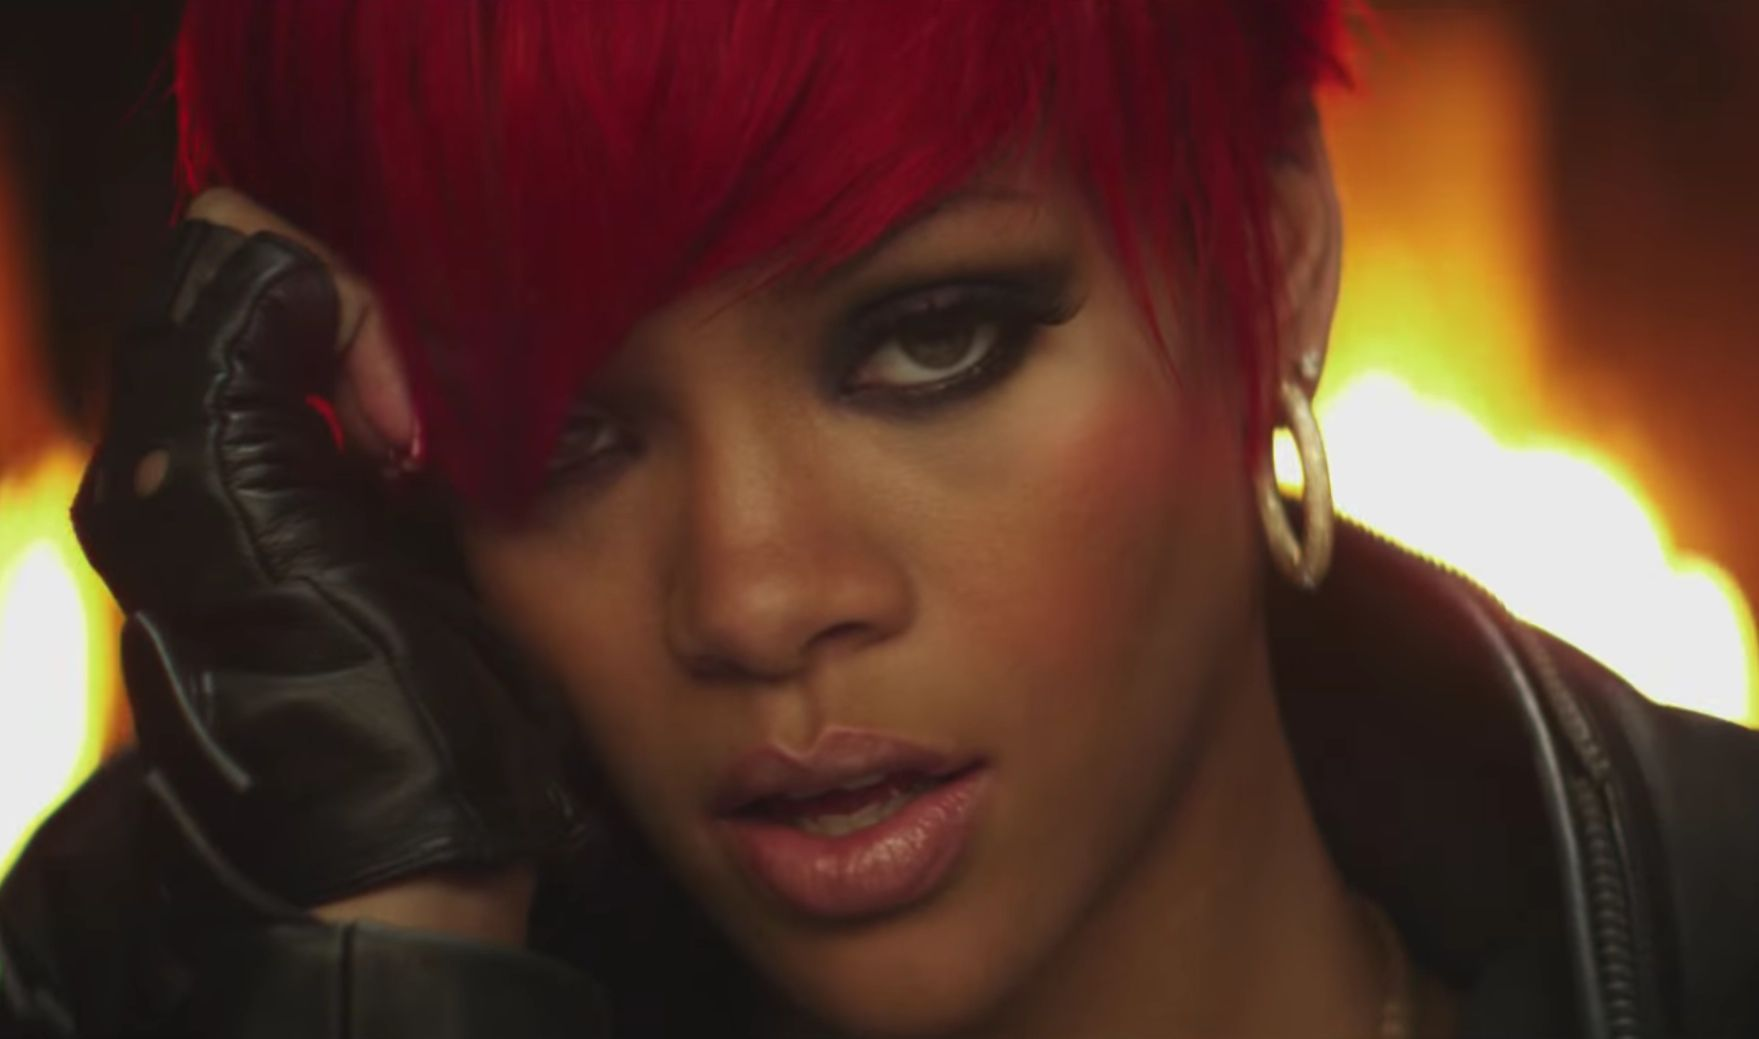 Top 10 Rihanna Music Videos Of Her Chart Topping Career